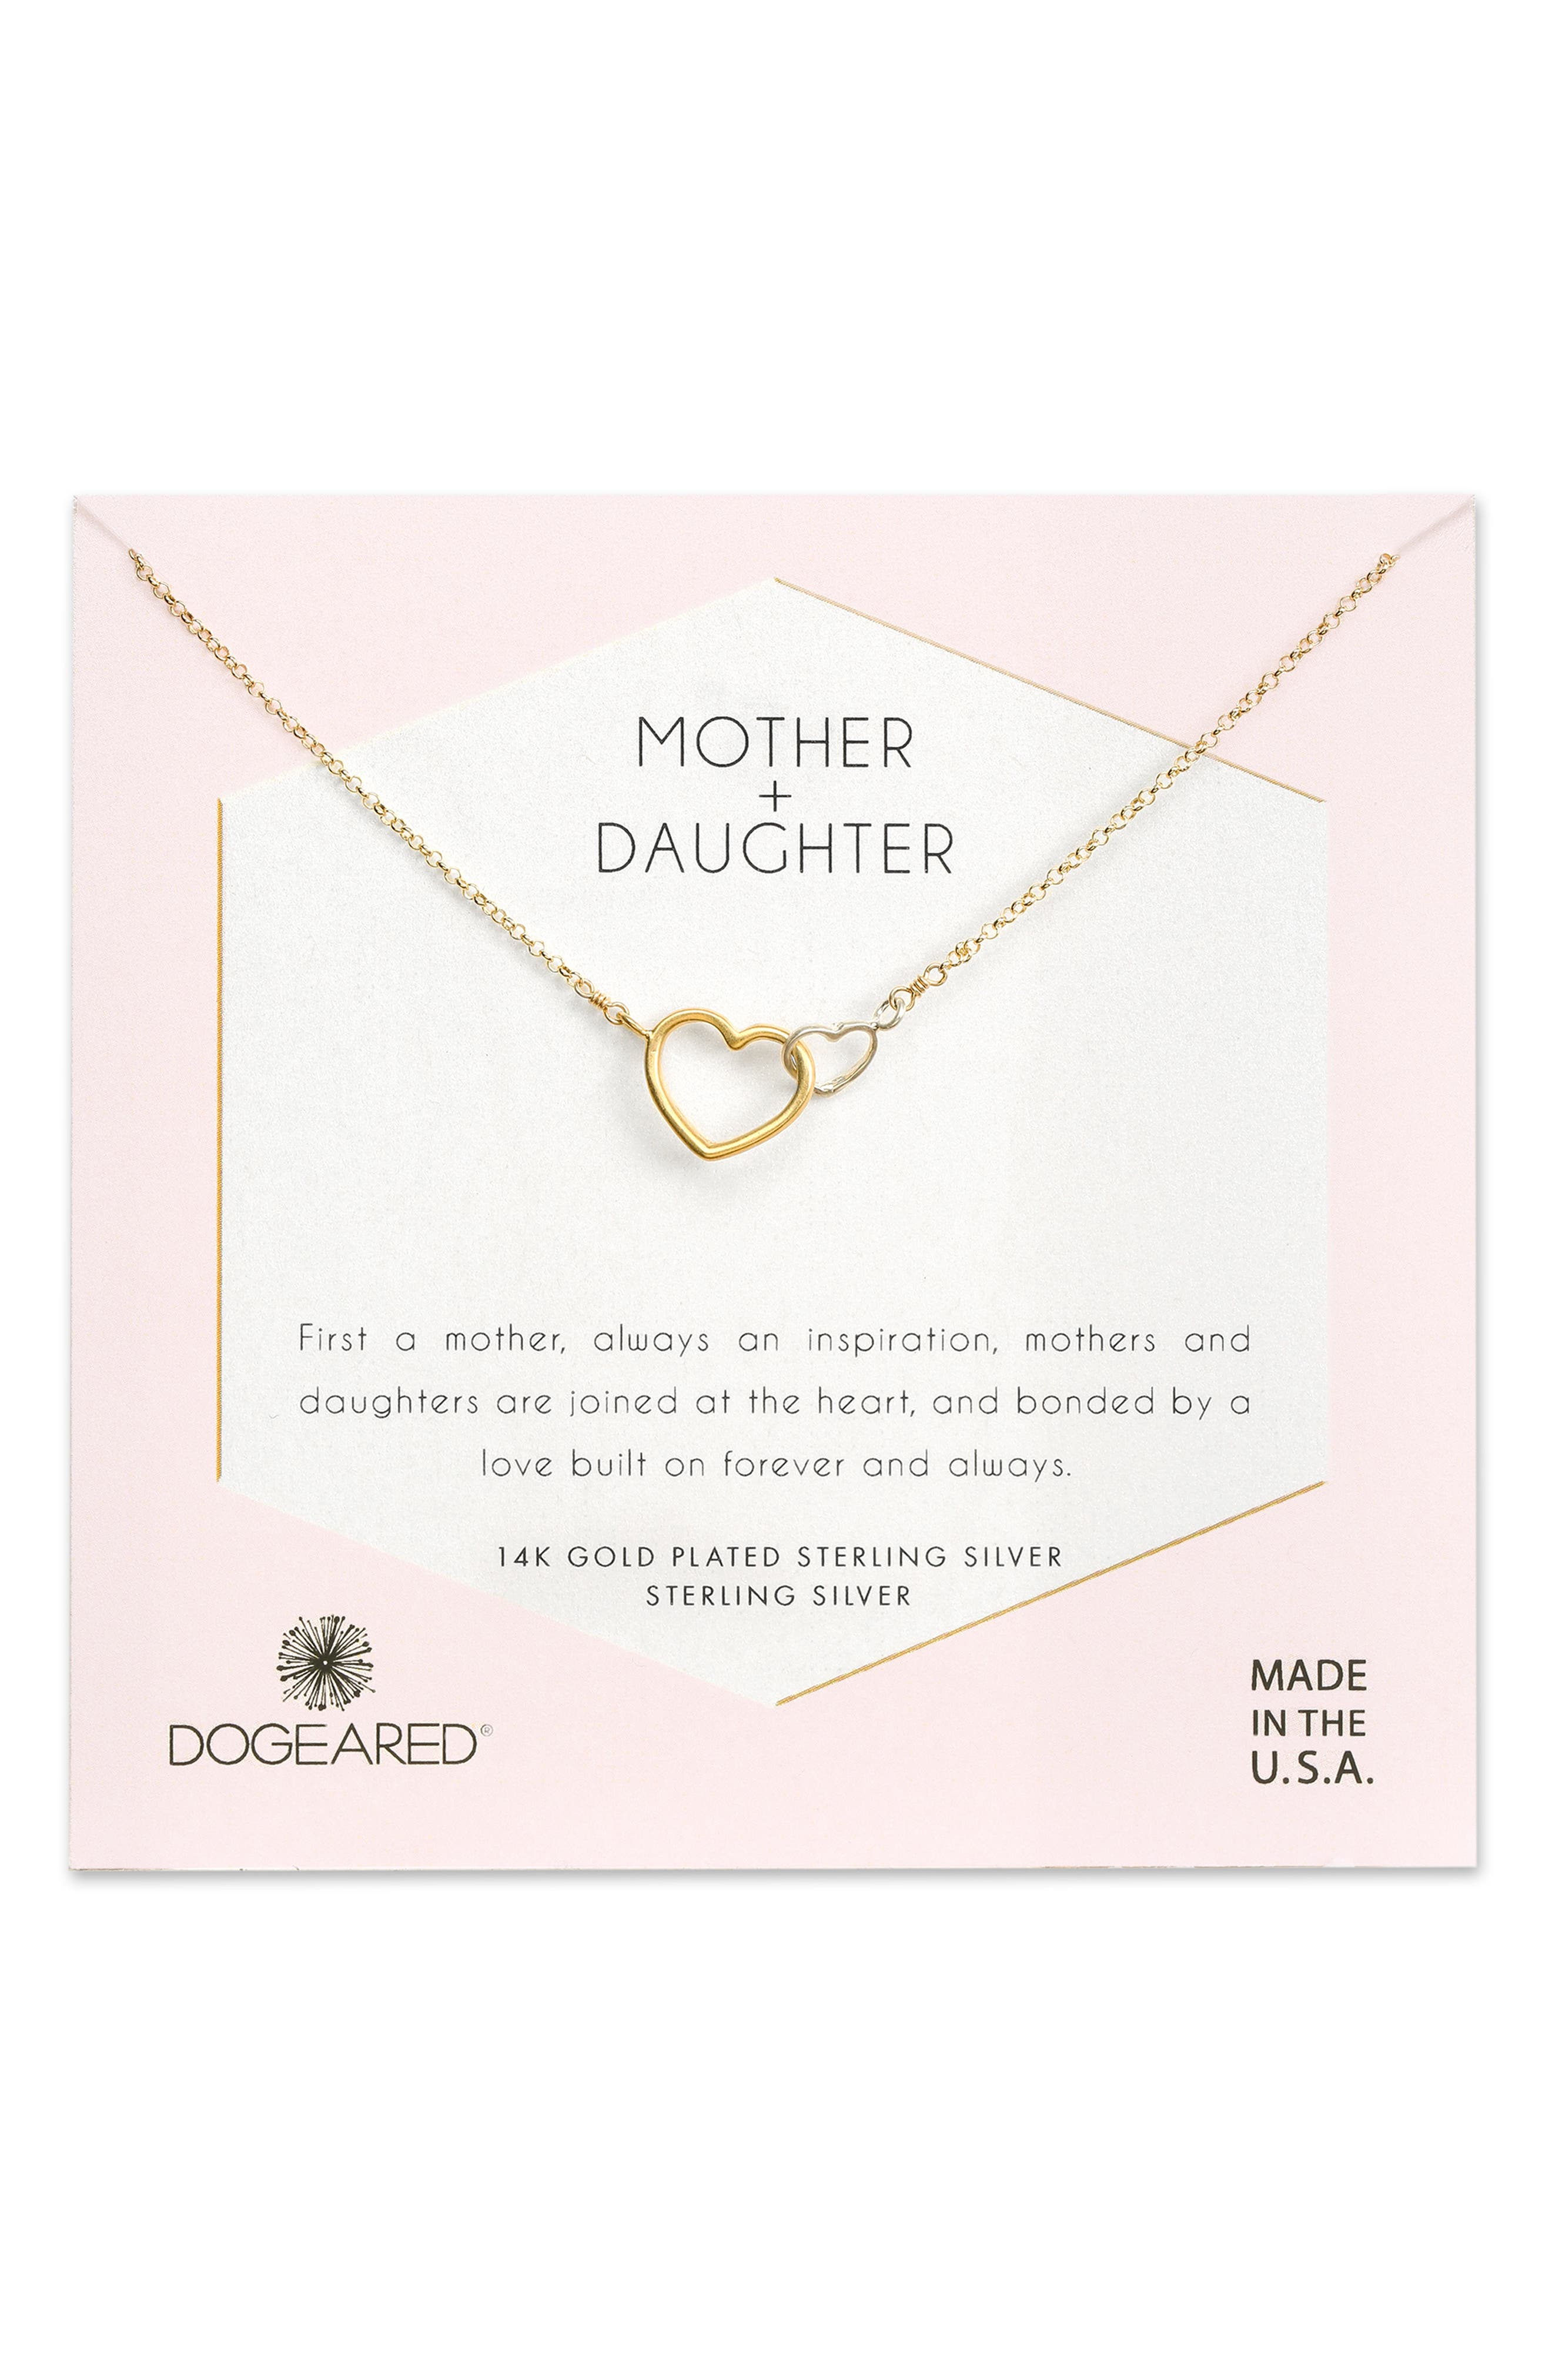 Mother + Daughter Linked Hearts Necklace,                         Main,                         color, 710